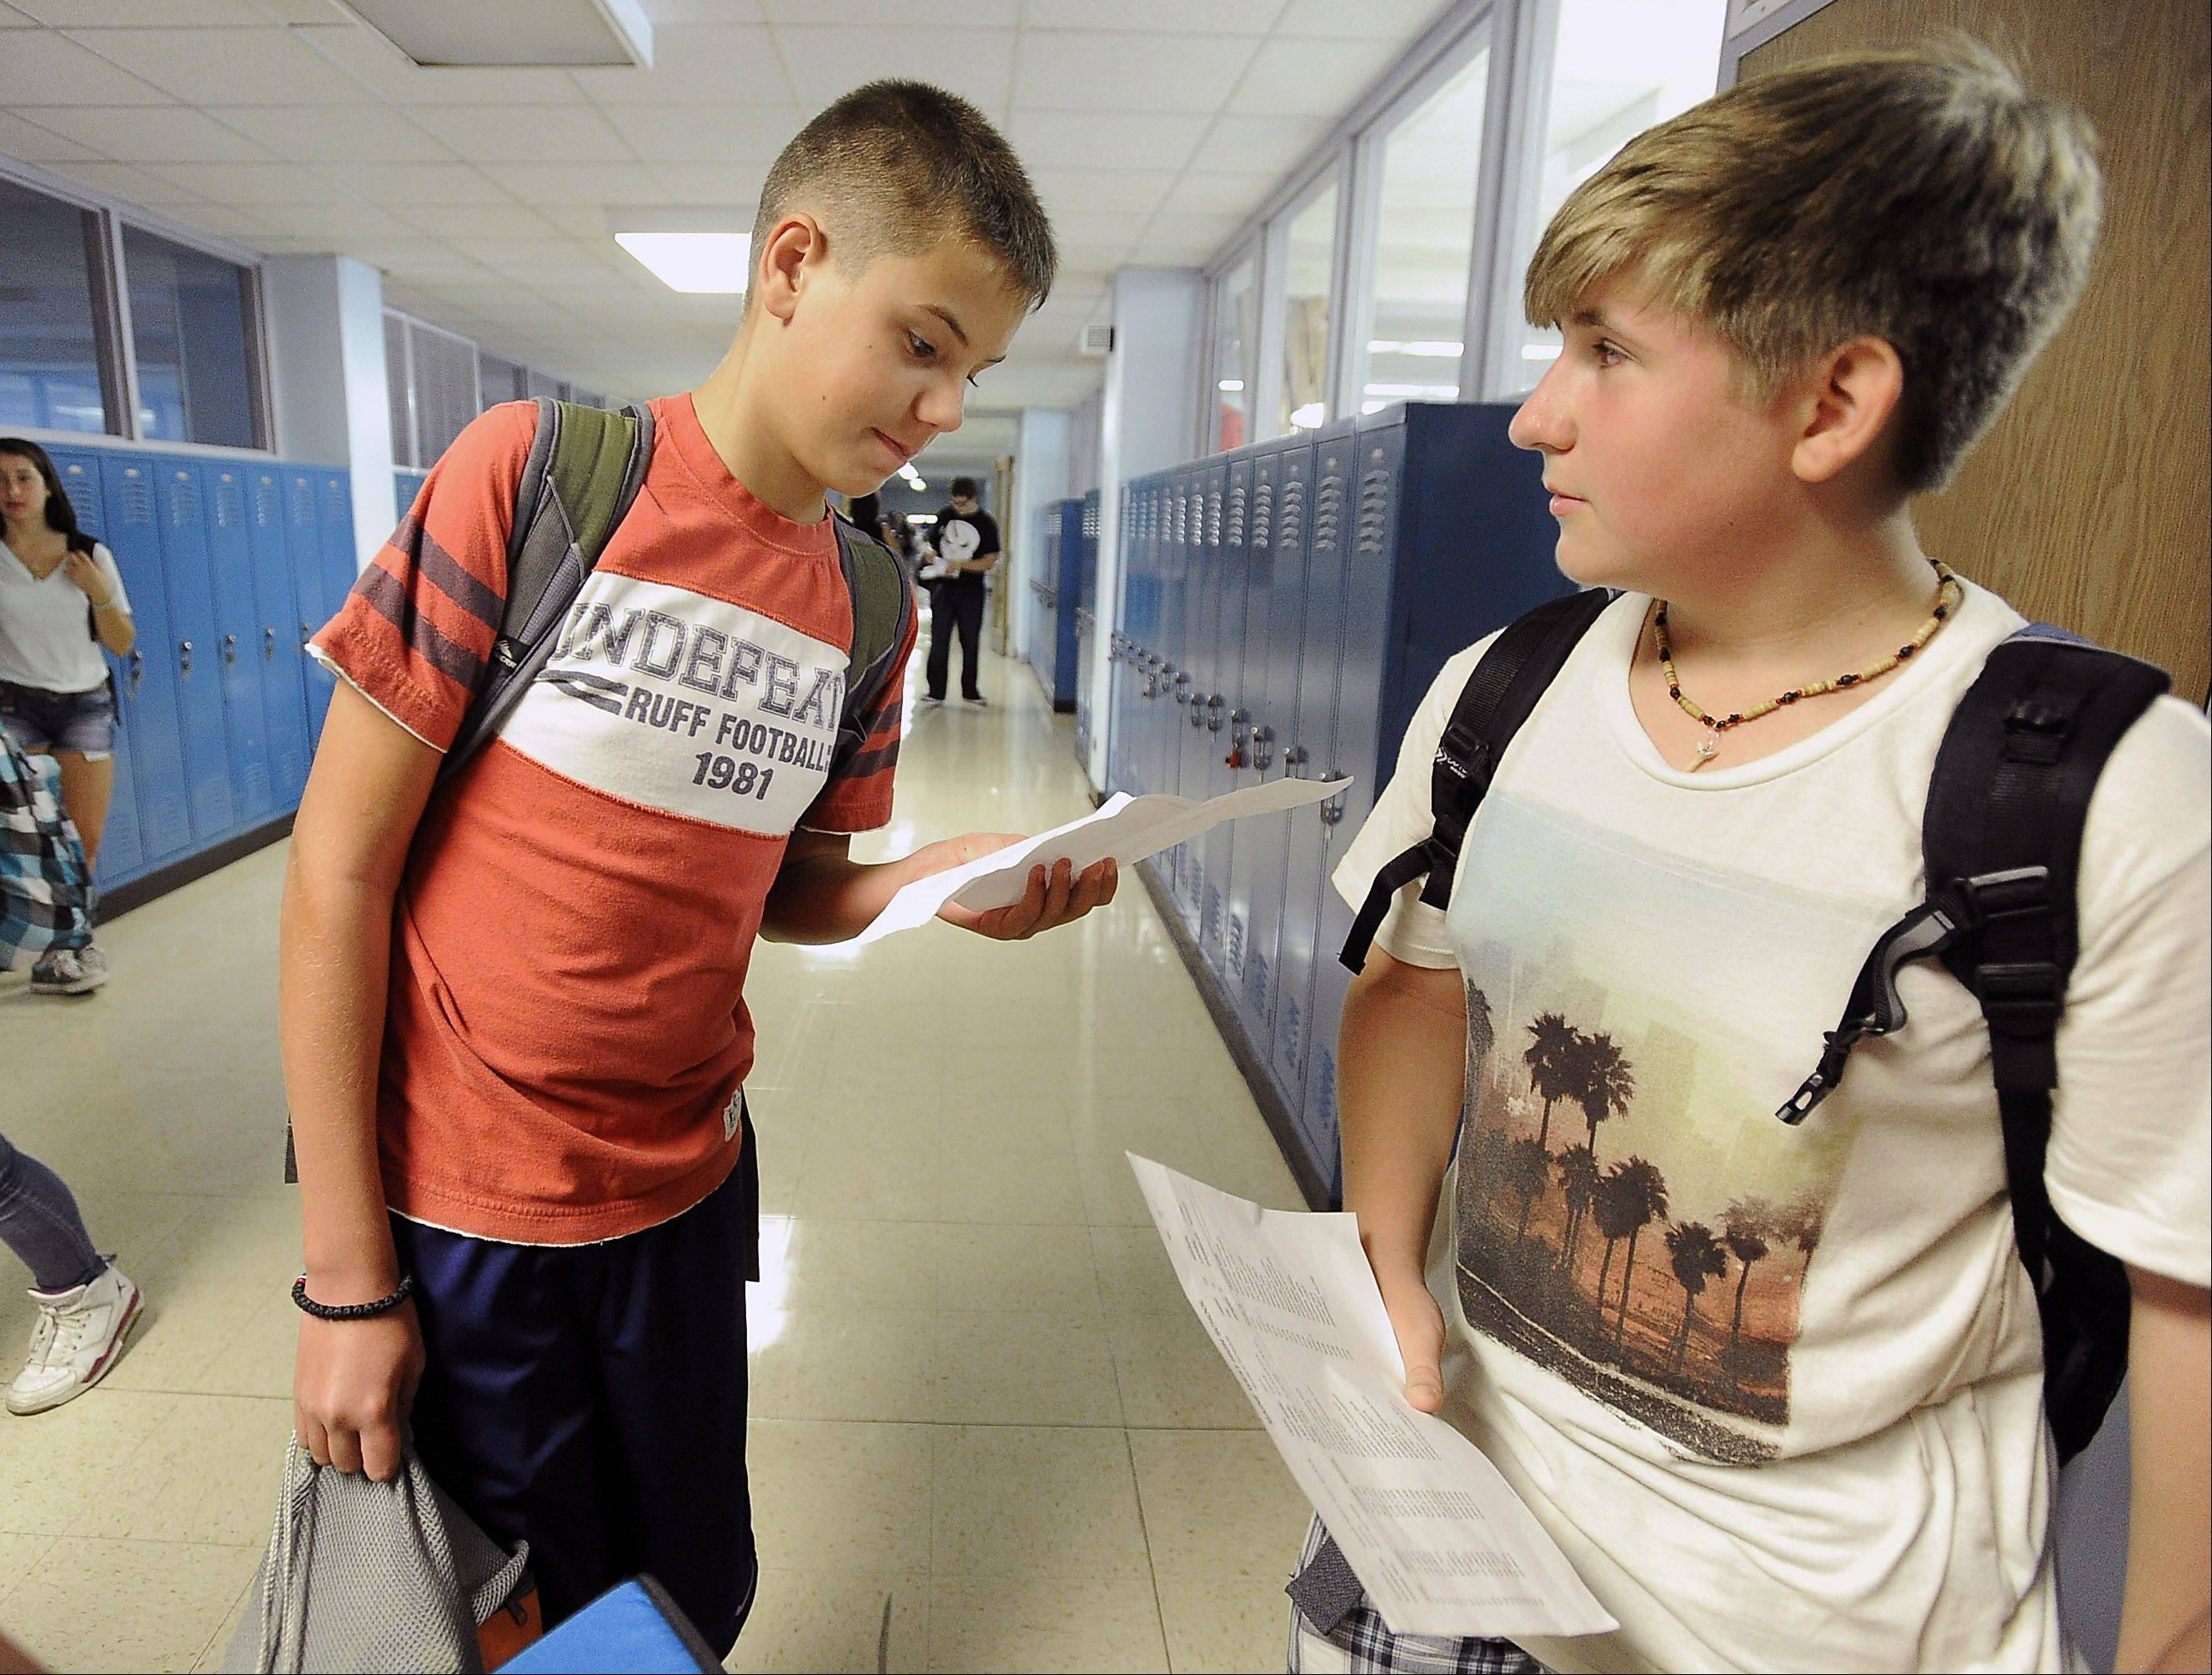 Djordje Lojanica, 14, and his friend Lucas Rychtarczyk, 14, compare schedules in the Maine West High School hallway on their first day back to school on Monday.